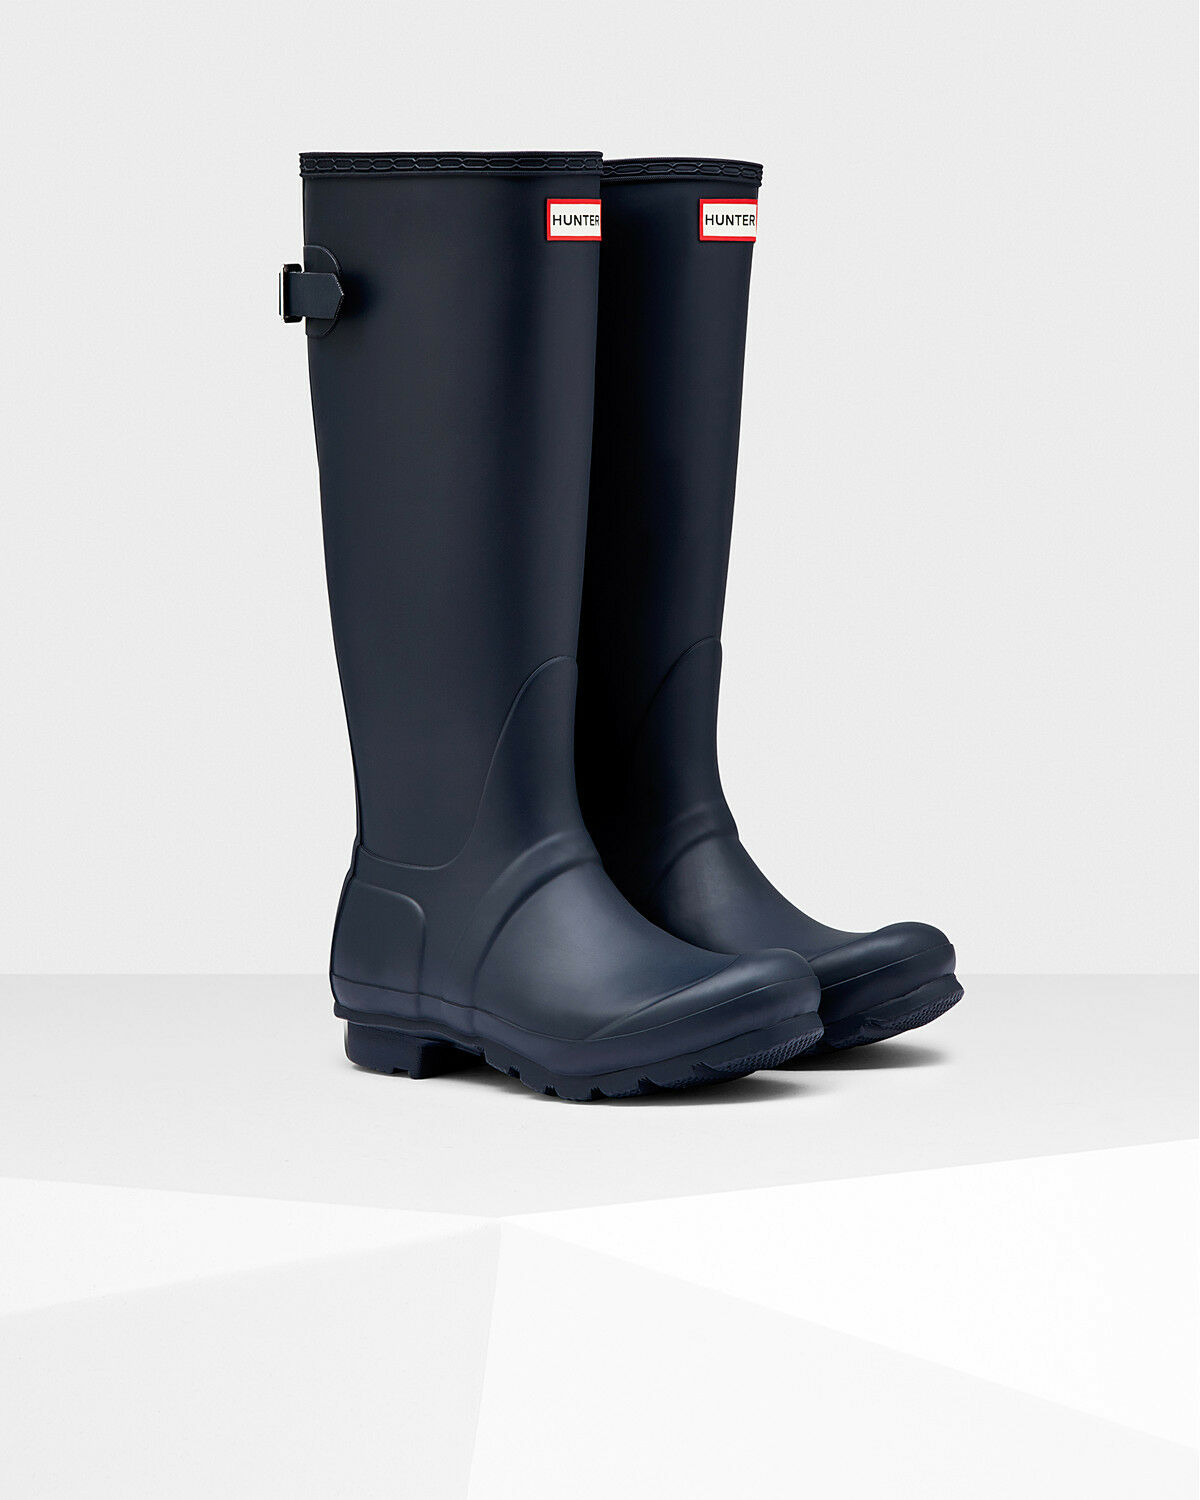 HUNTER ADJUSTABLE BACK NAVY WOMENS RAIN BOOTS